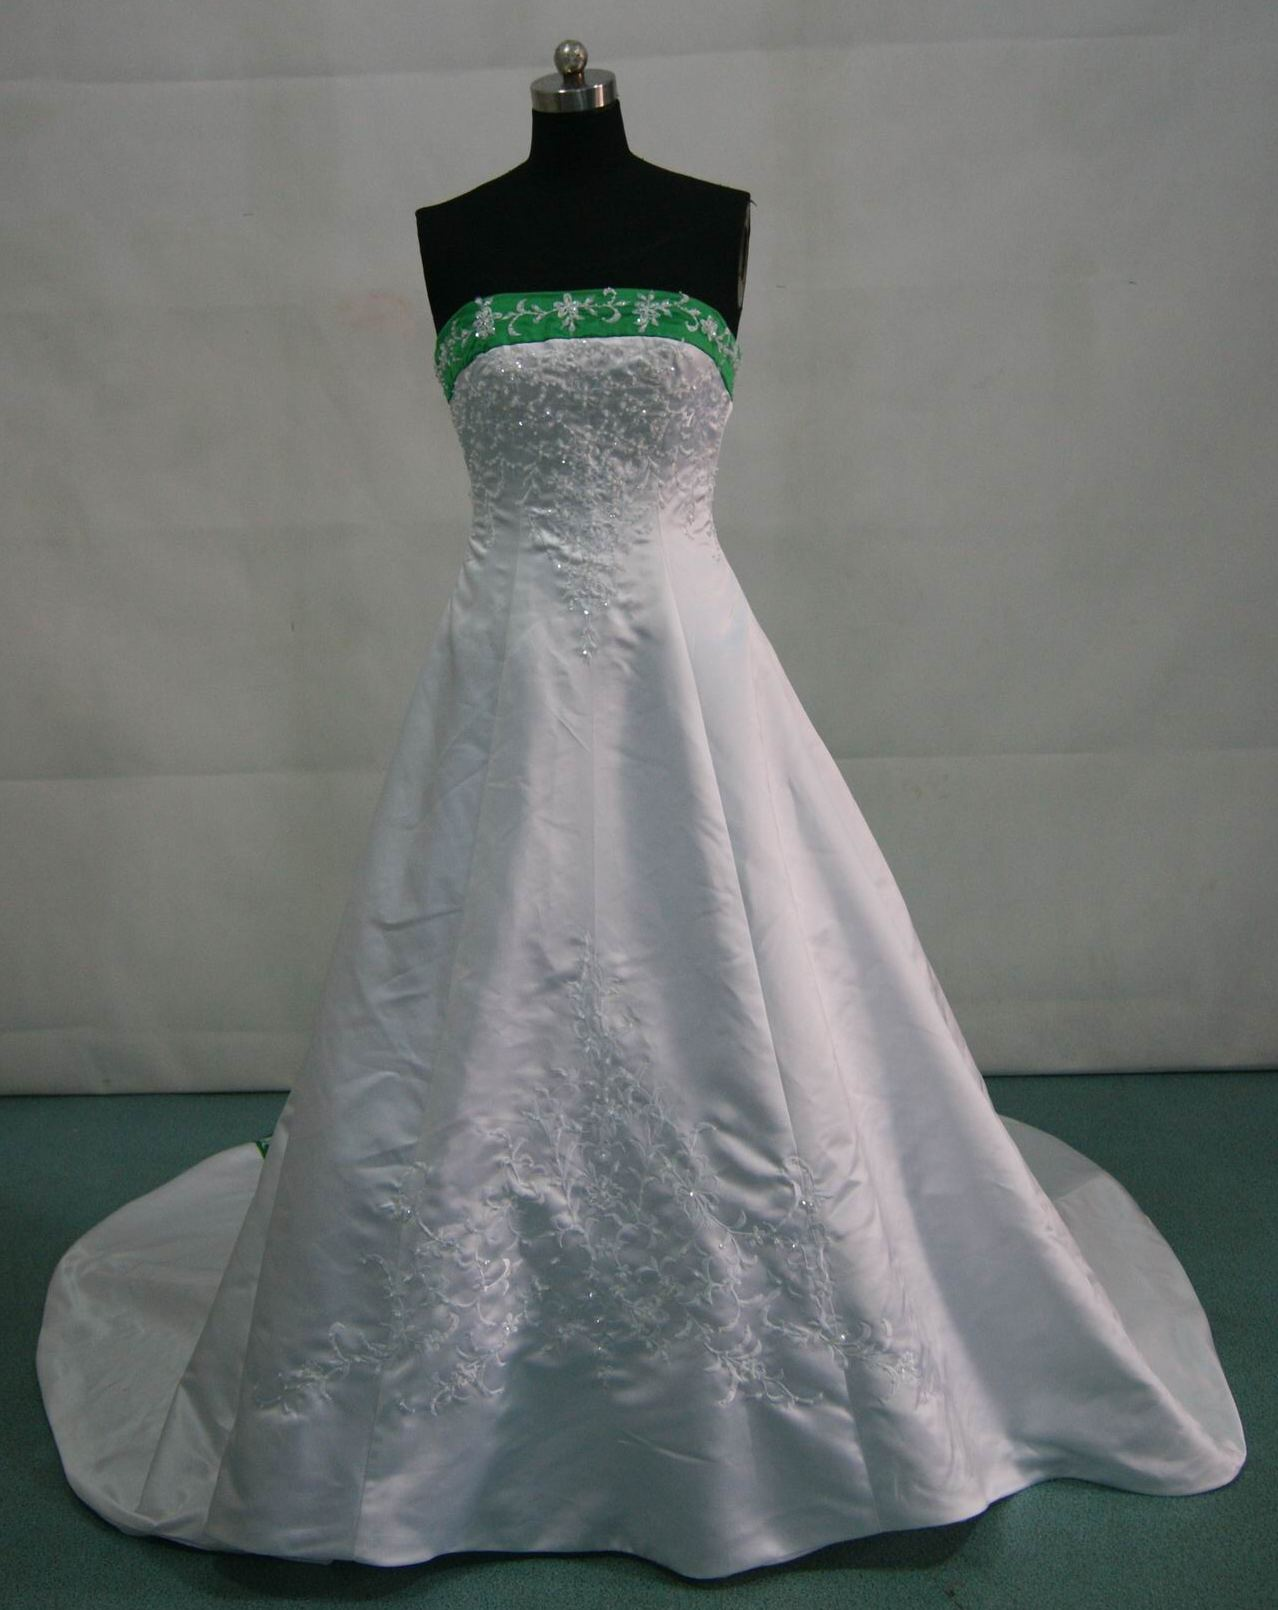 Size 8 Winter wedding gown - white and emerald green